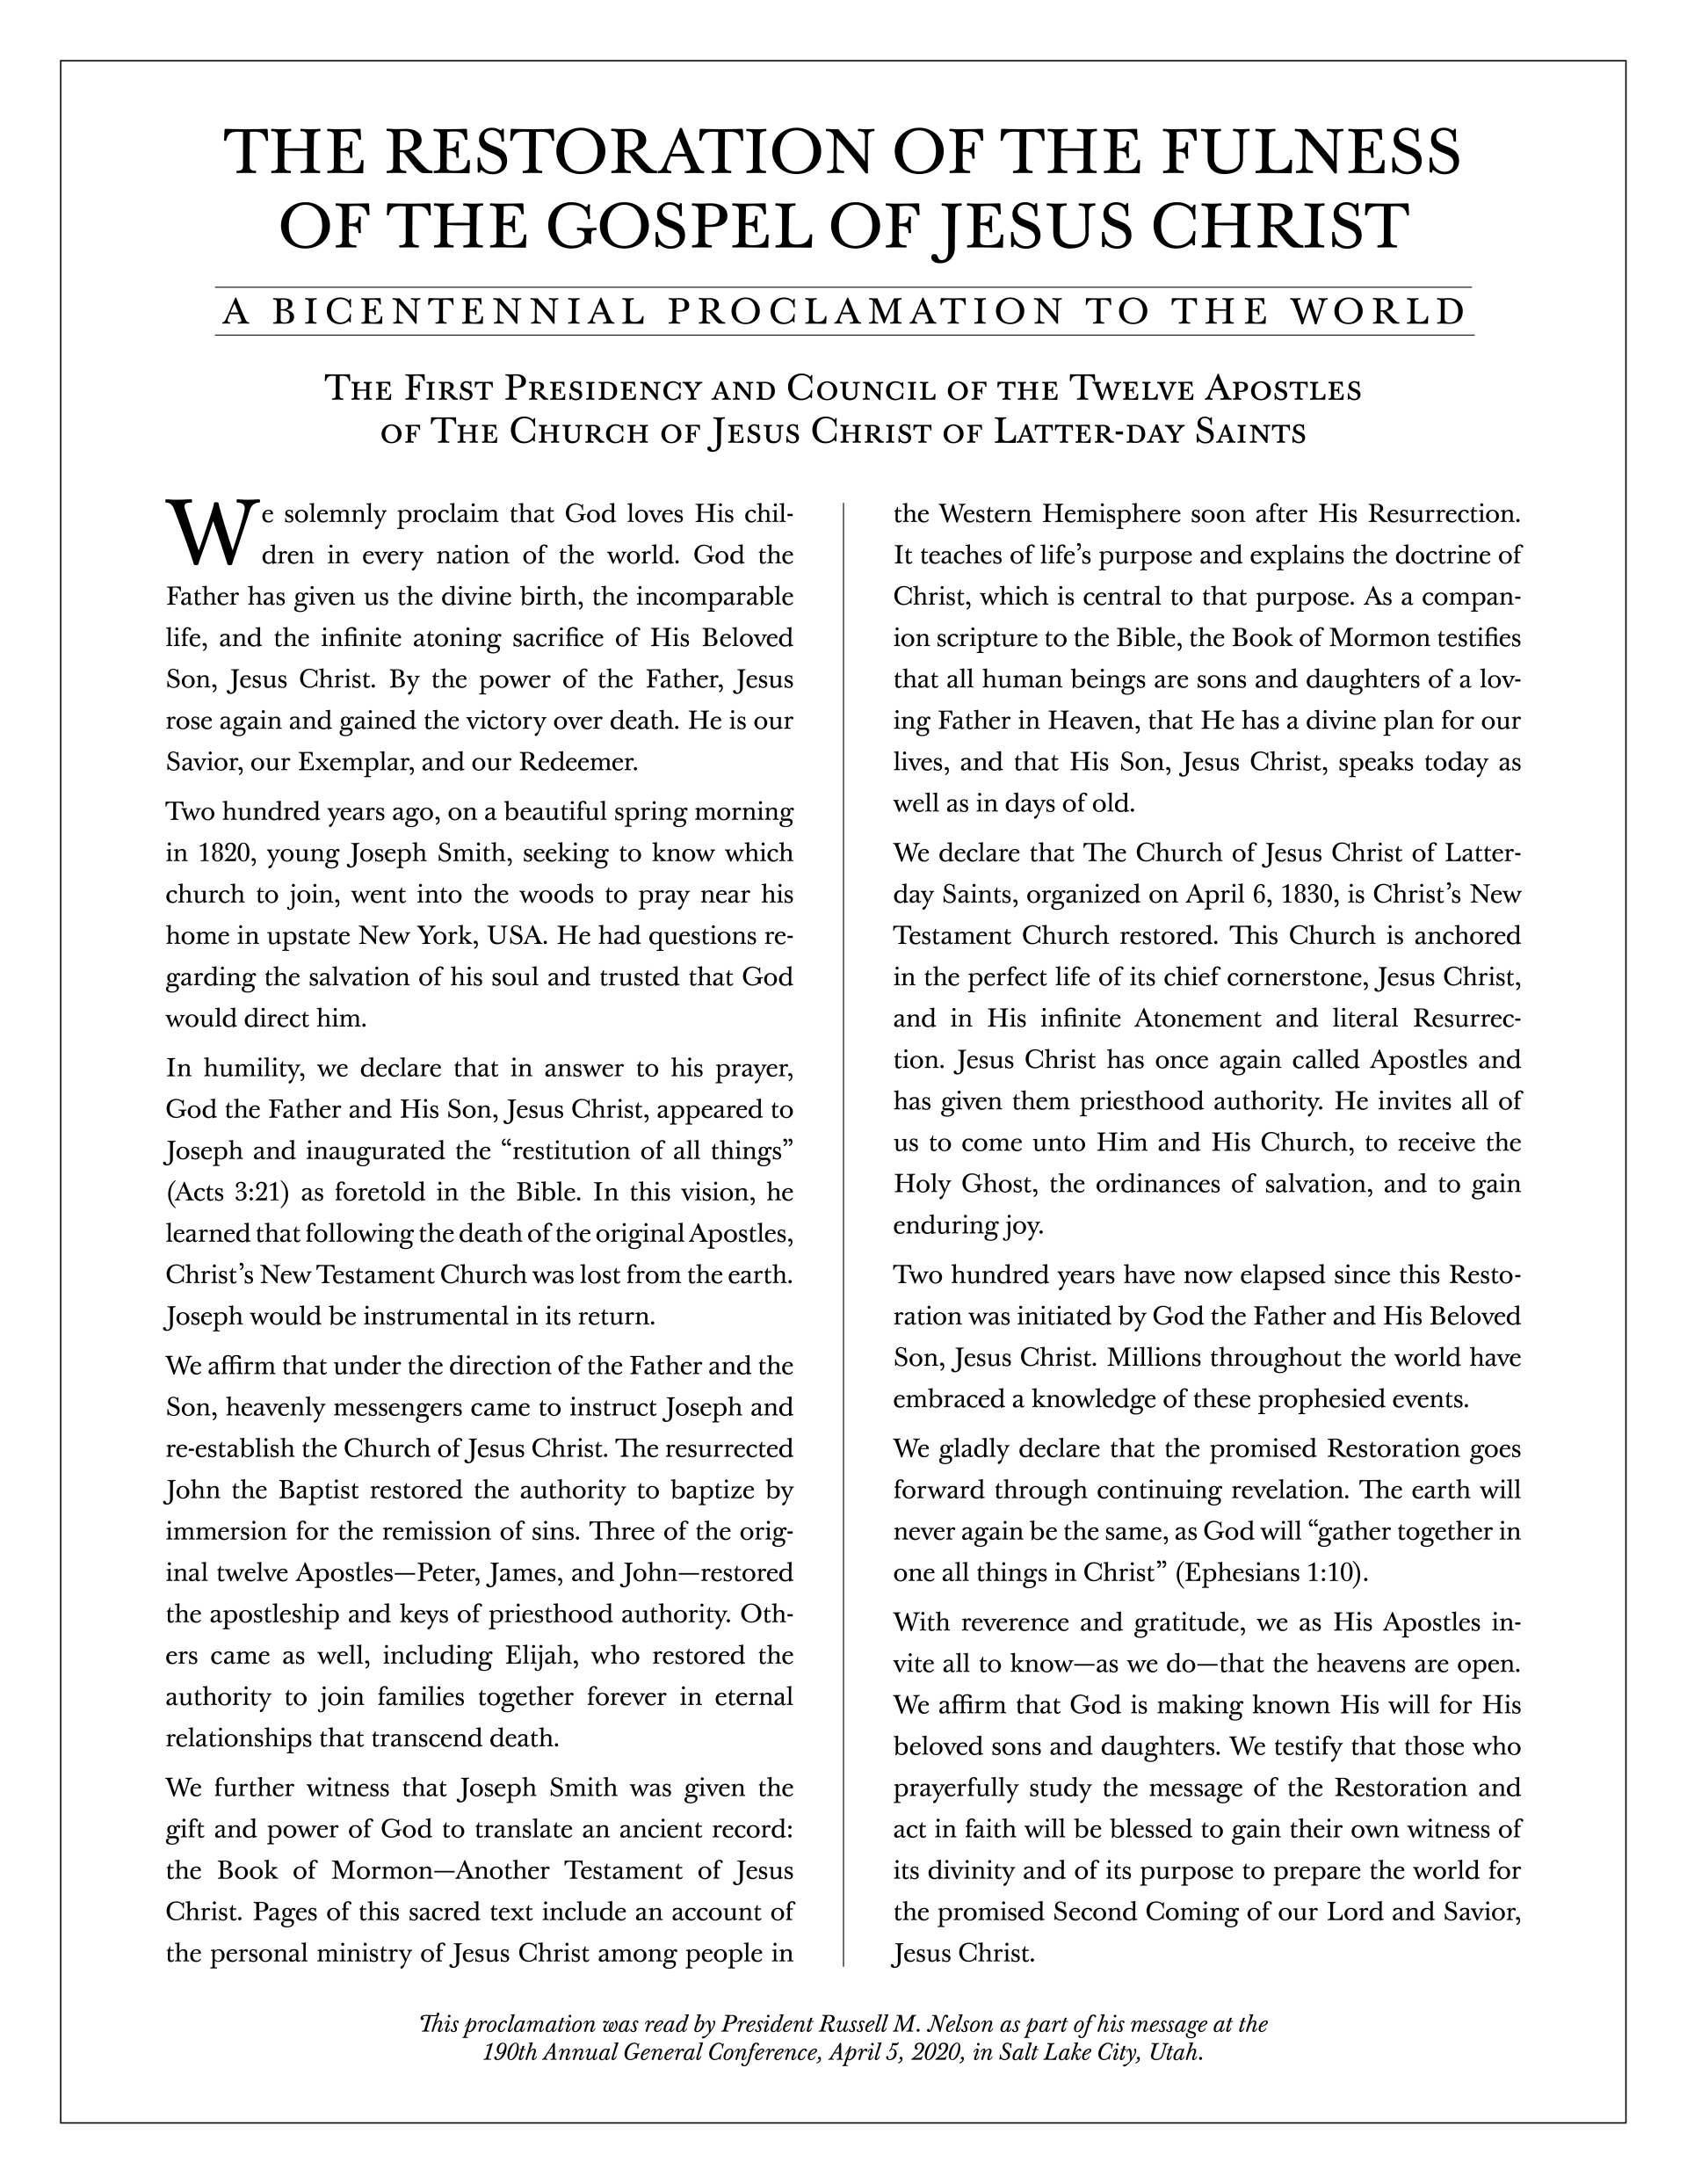 The Restoration of the Fulness of the Gospel of Jesus Christ: A Bicentennial Proclamation to the World